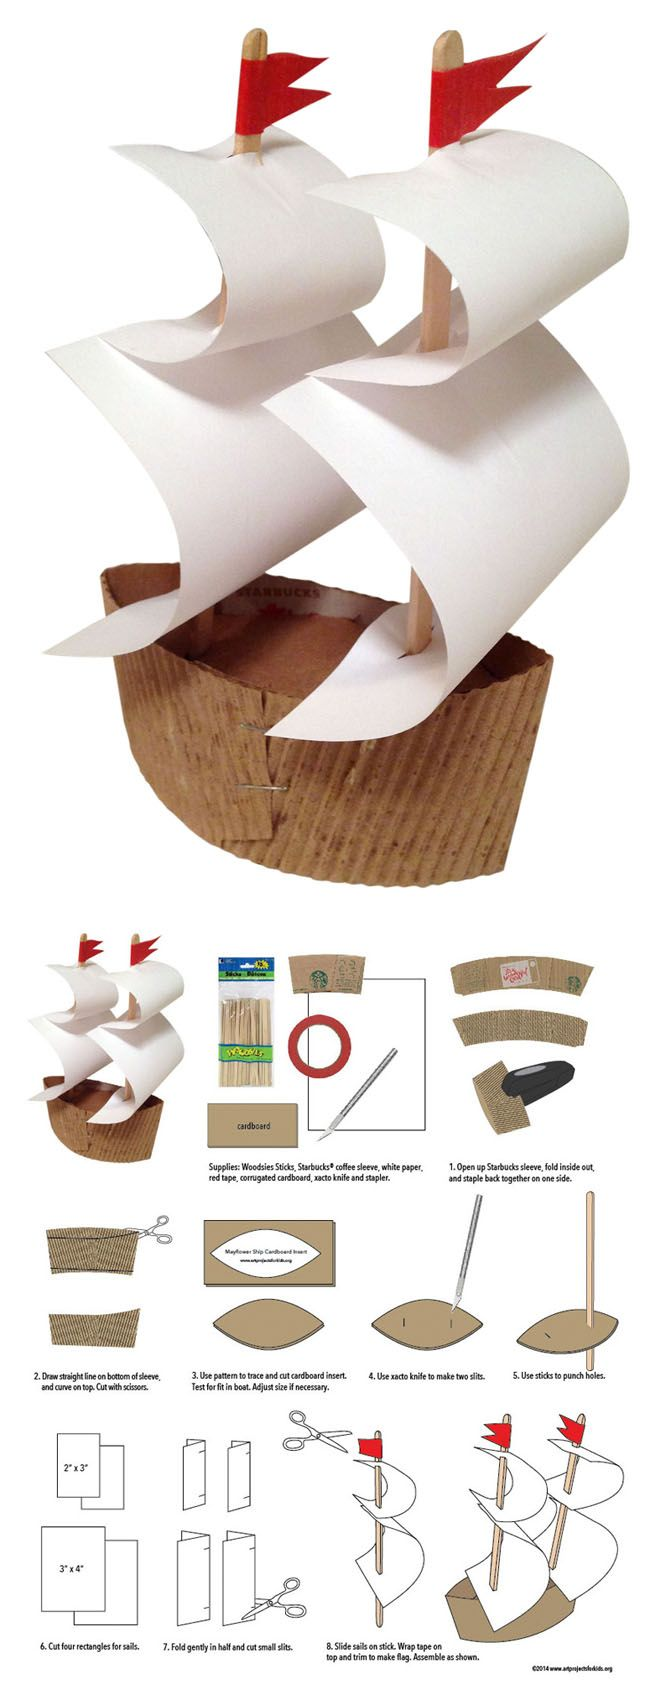 make-a-mayflower-ship Thanksgiving kids craft                                                                                                                                                                                 More